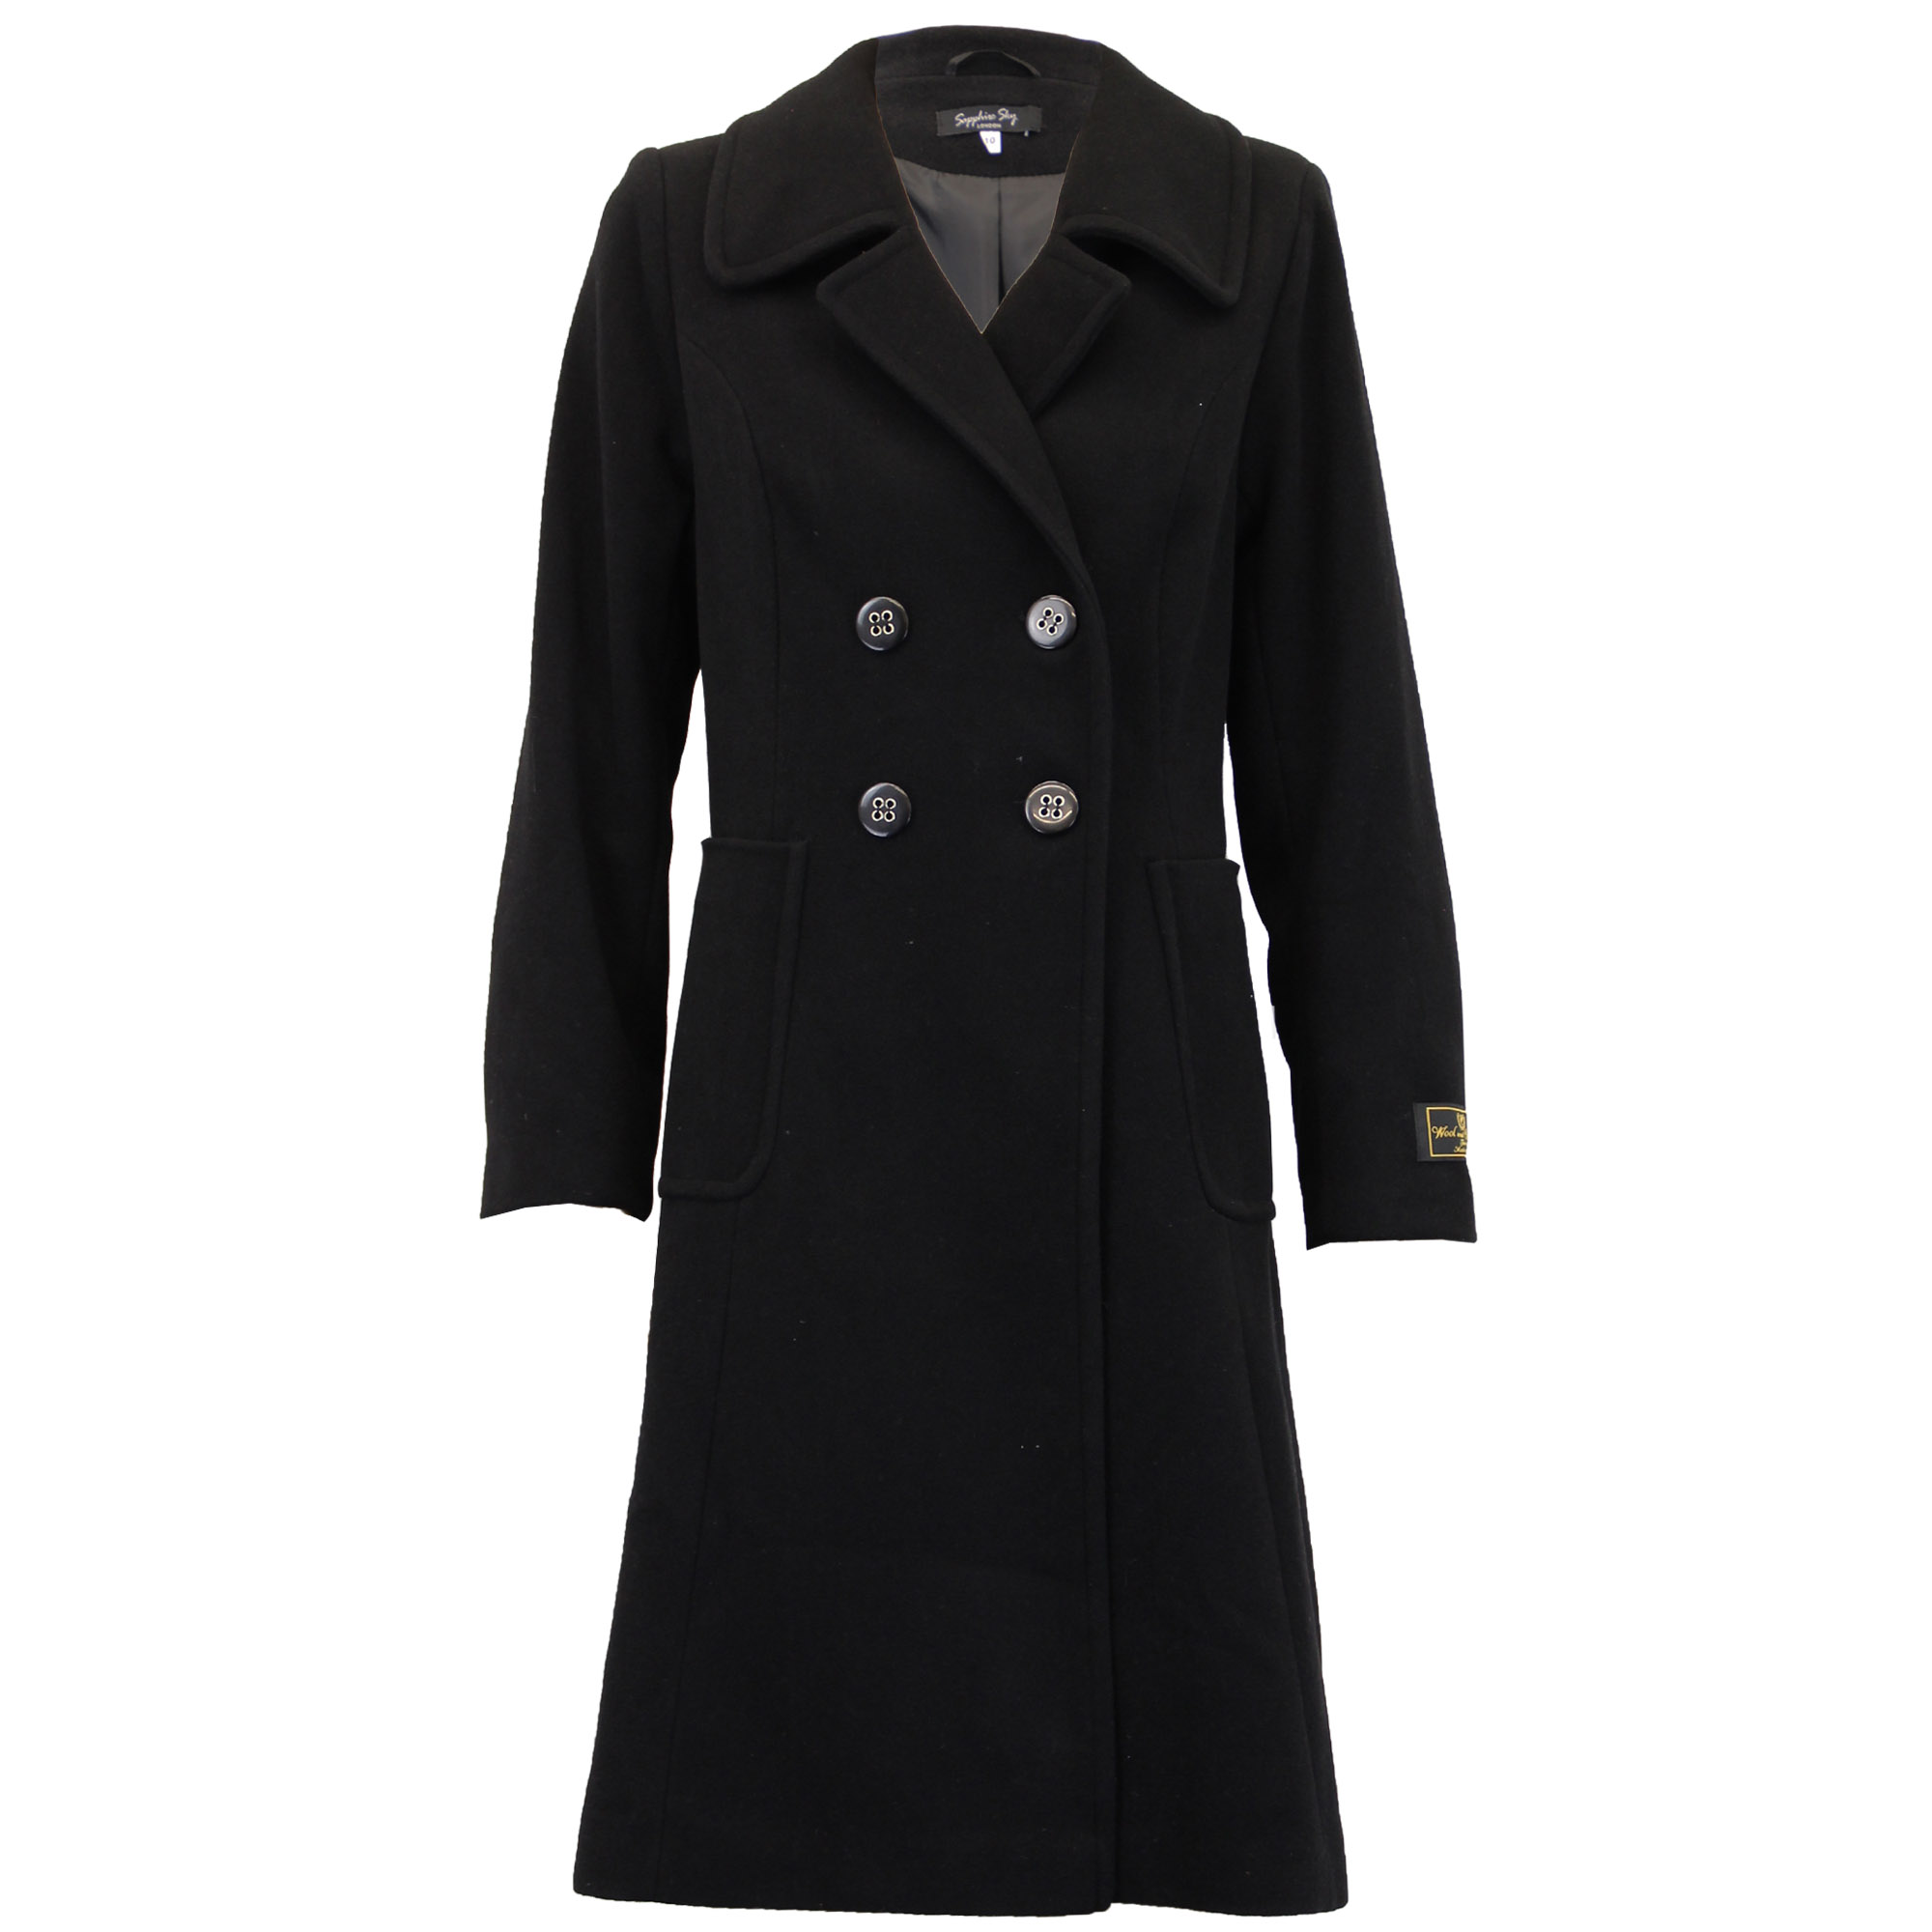 Ladies-Wool-Cashmere-Coat-Womens-Jacket-Double-Breasted-Outerwear-Trench-Winter